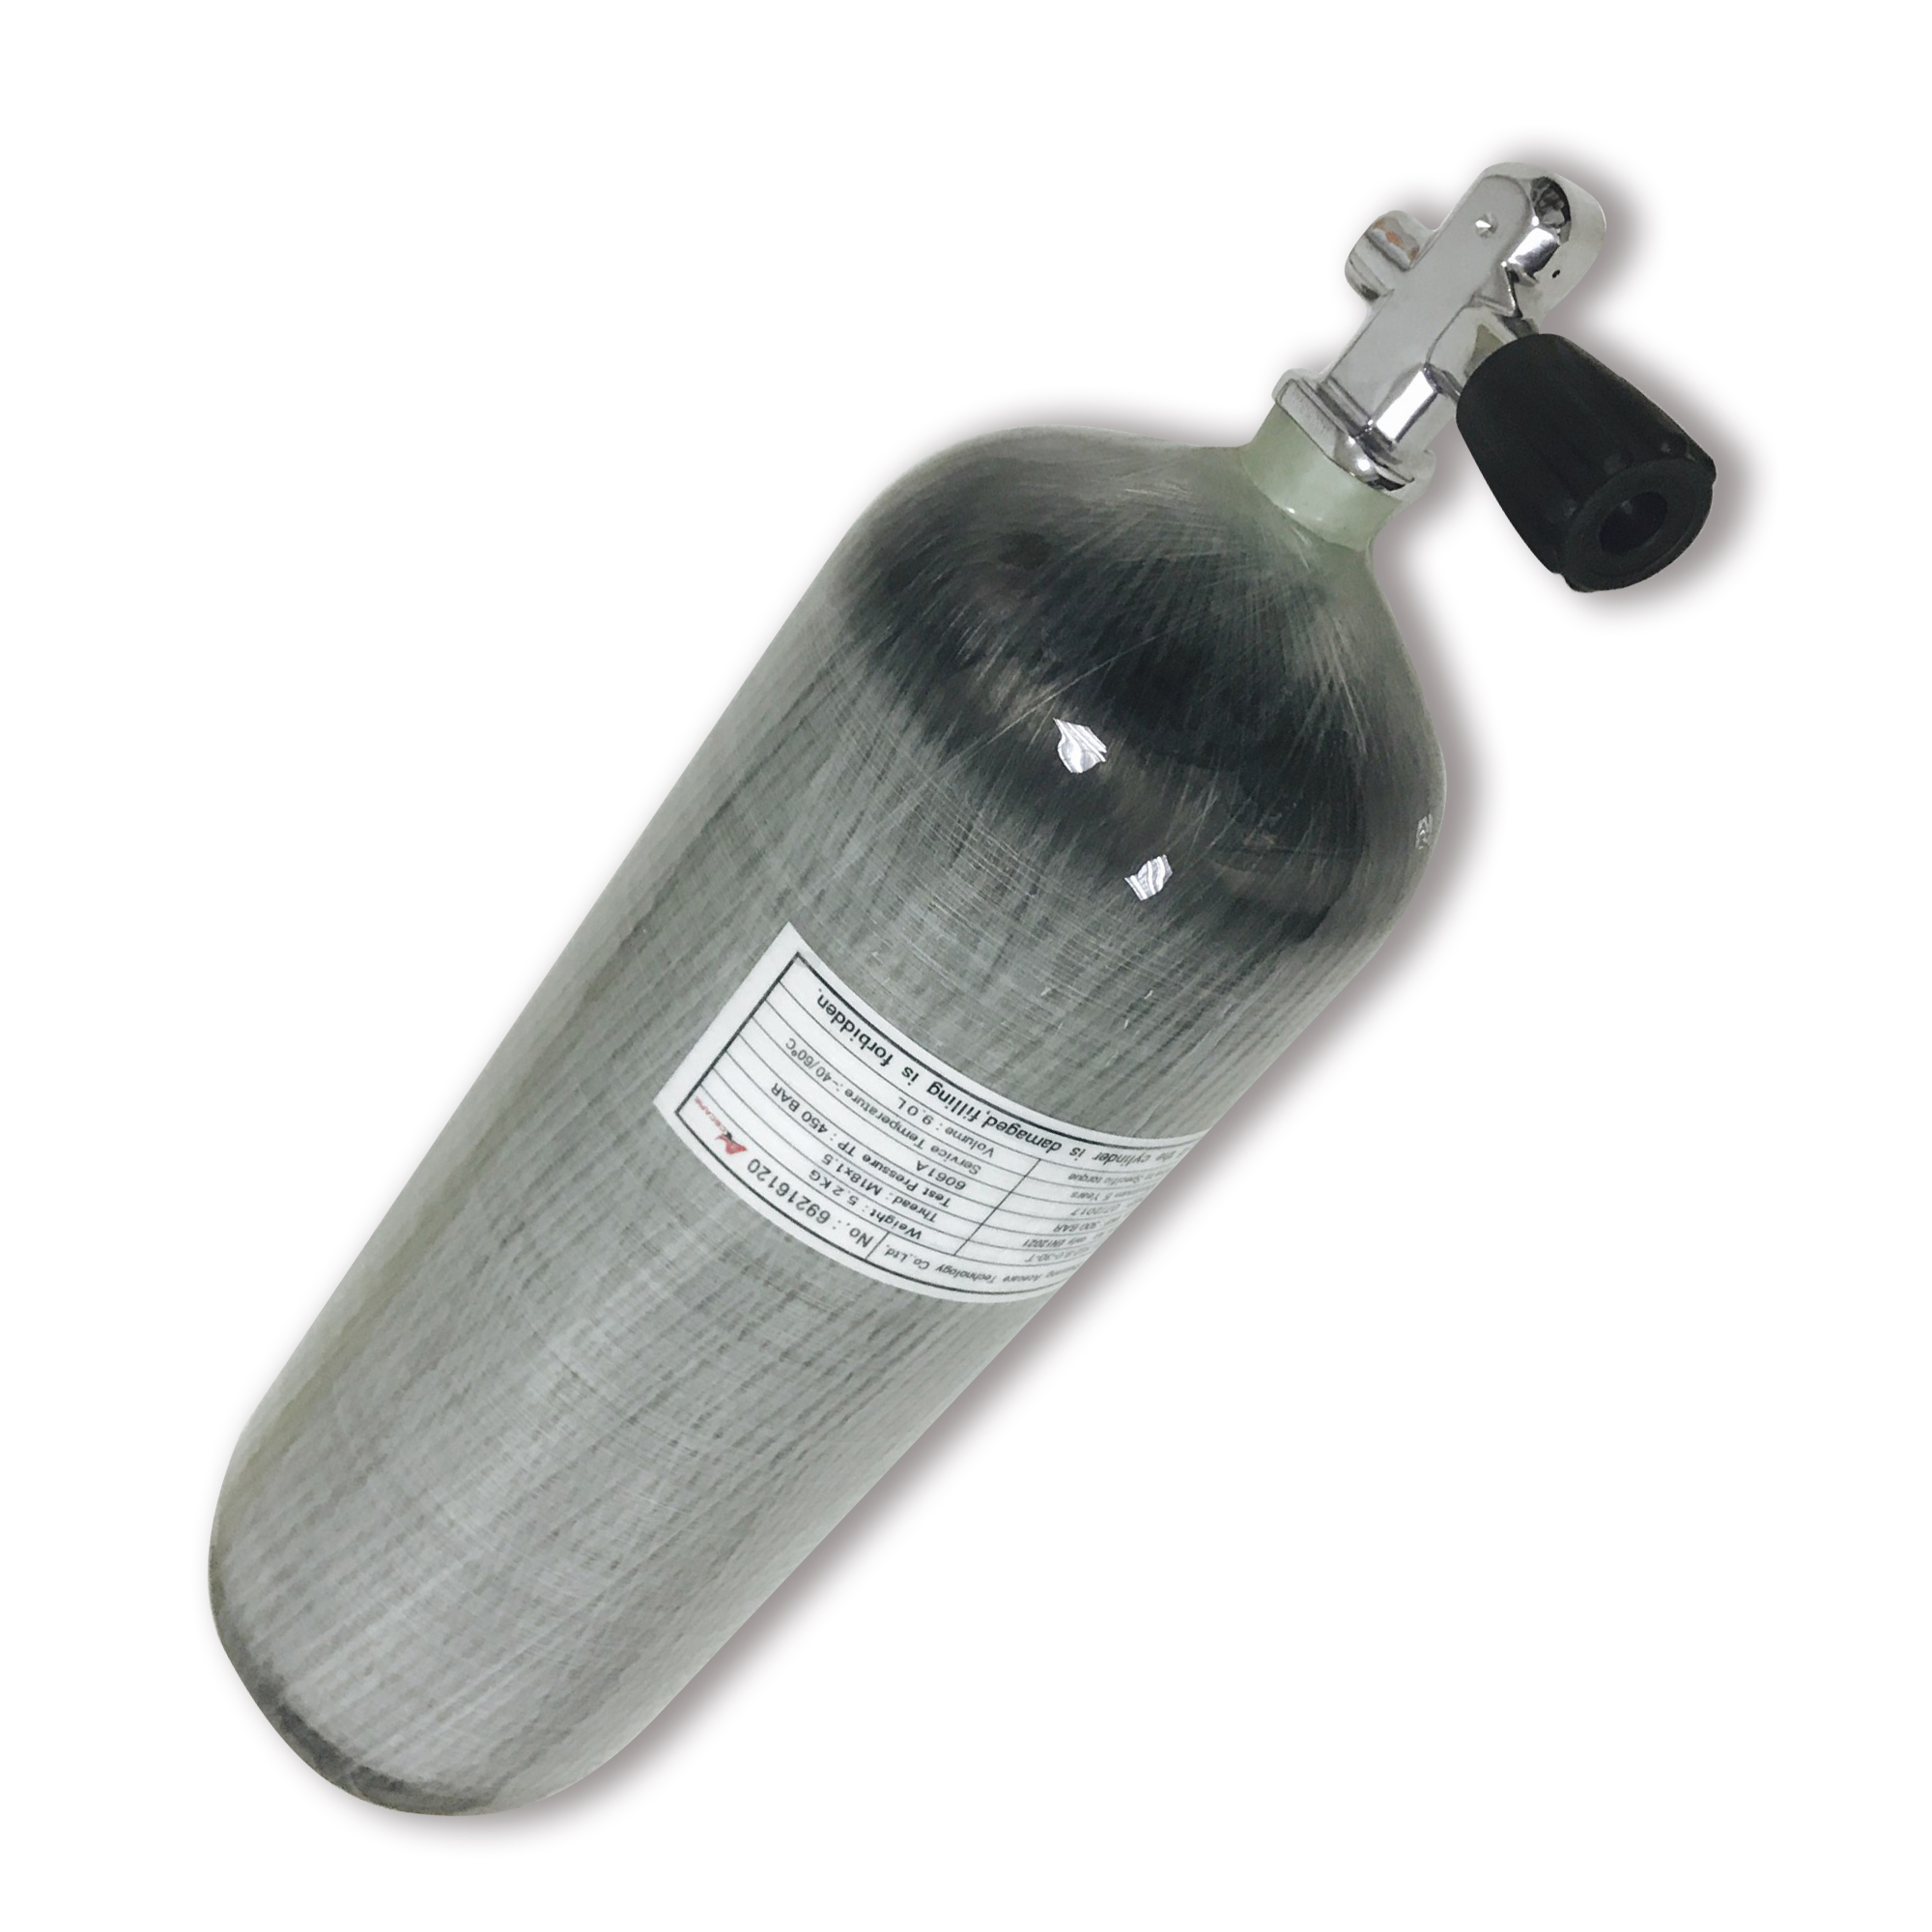 ACECARE Airgun Pcp Gun Pressure 4500psi Airforce Pcp Paintball Diving Tank With Diving Valve Buy China Direct AC10951